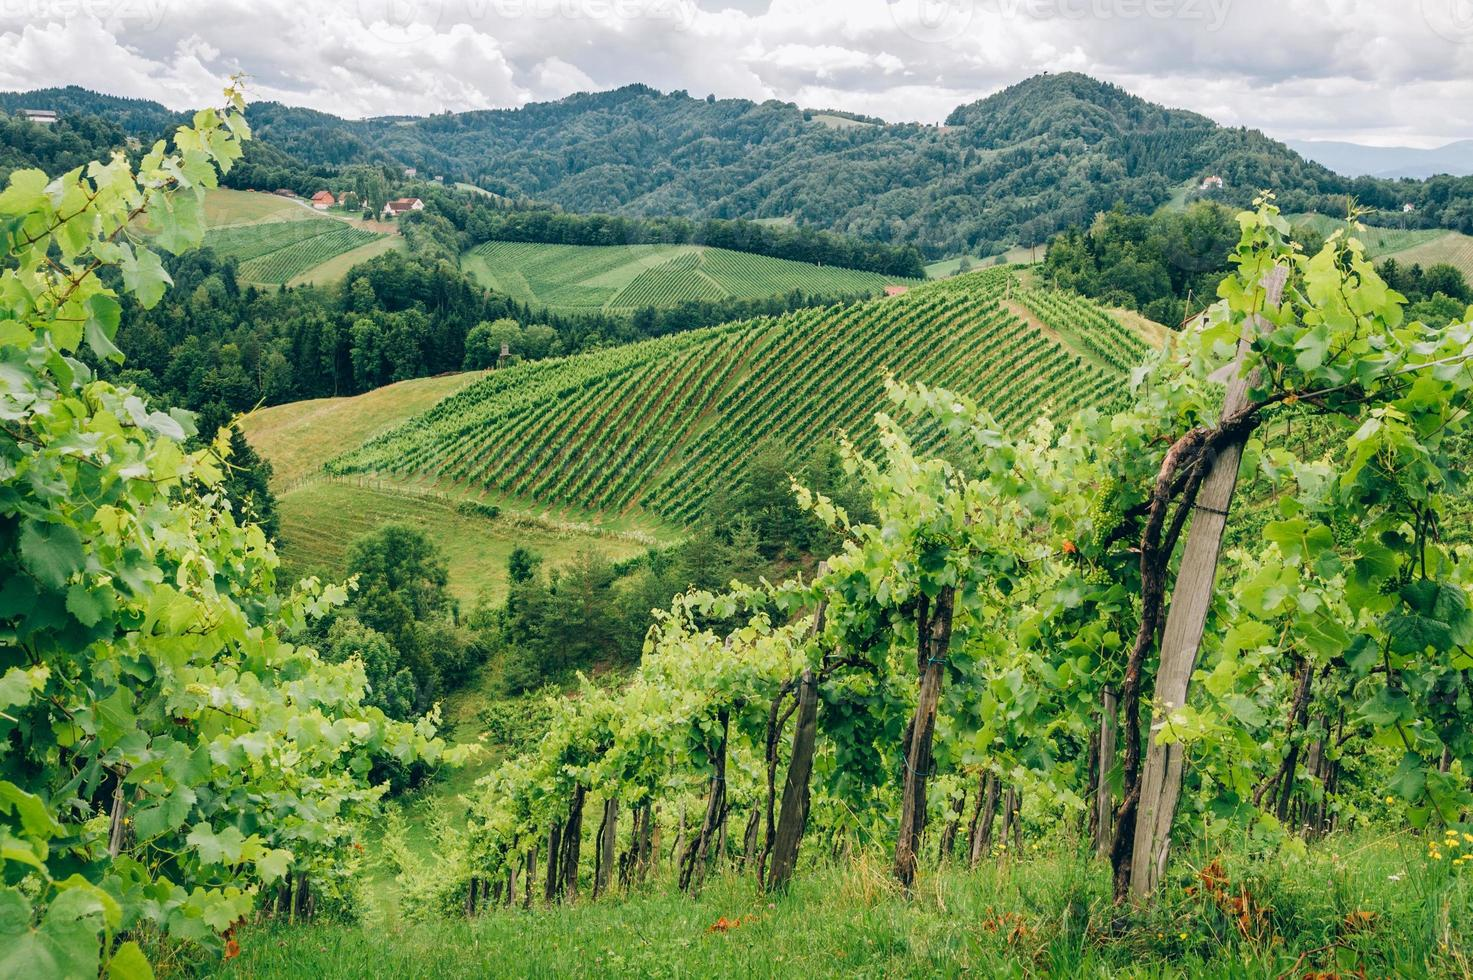 Grapevines in Southern Styria photo